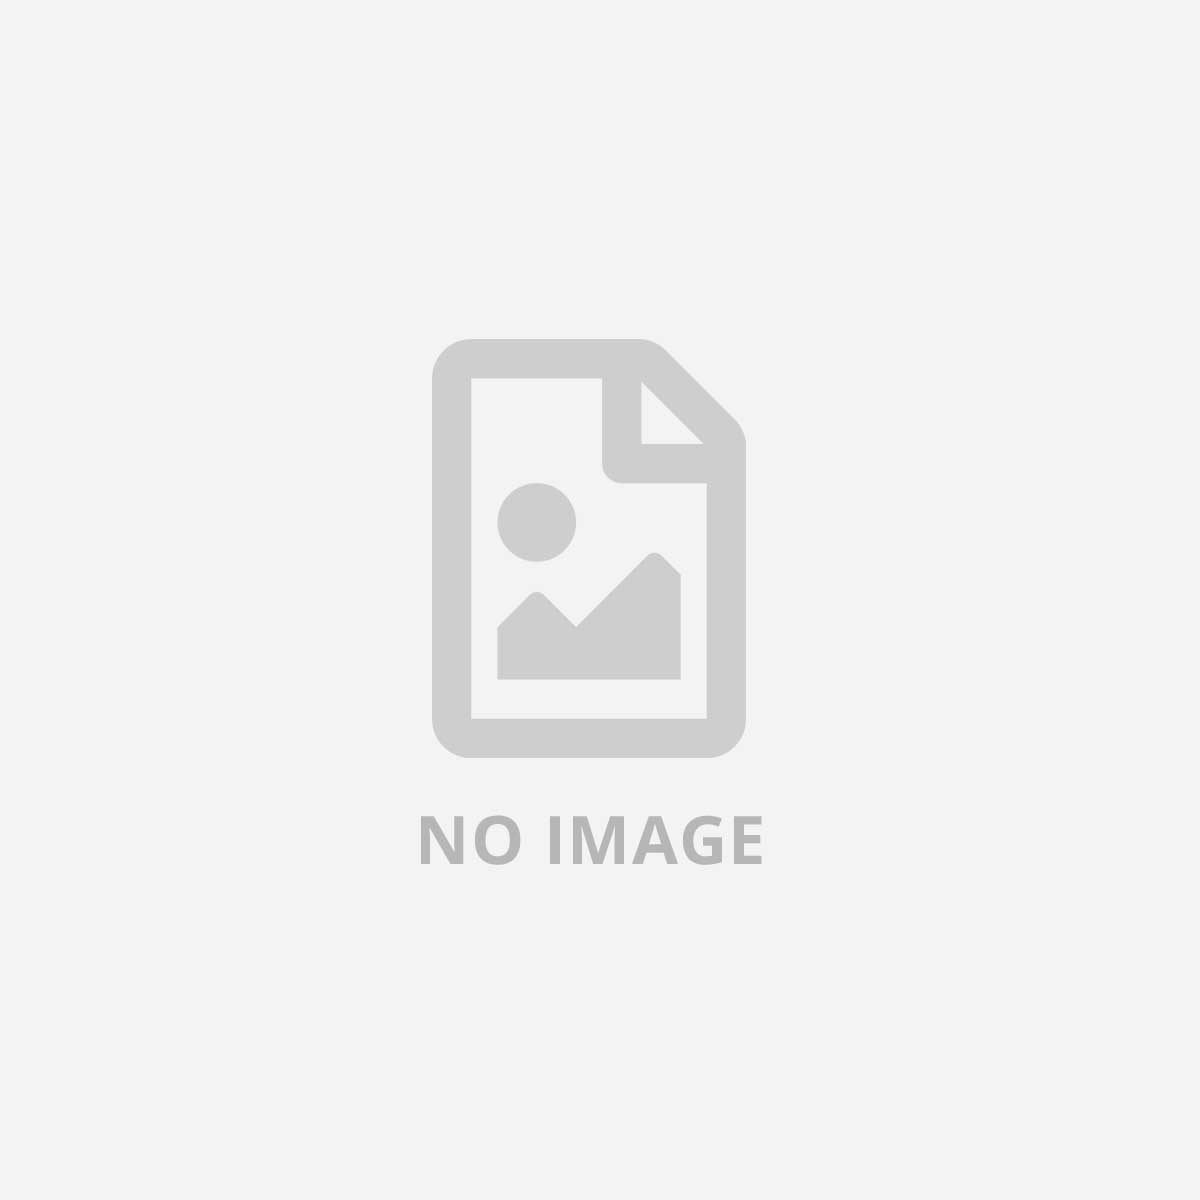 MEDION DAB+RADIO GREEN